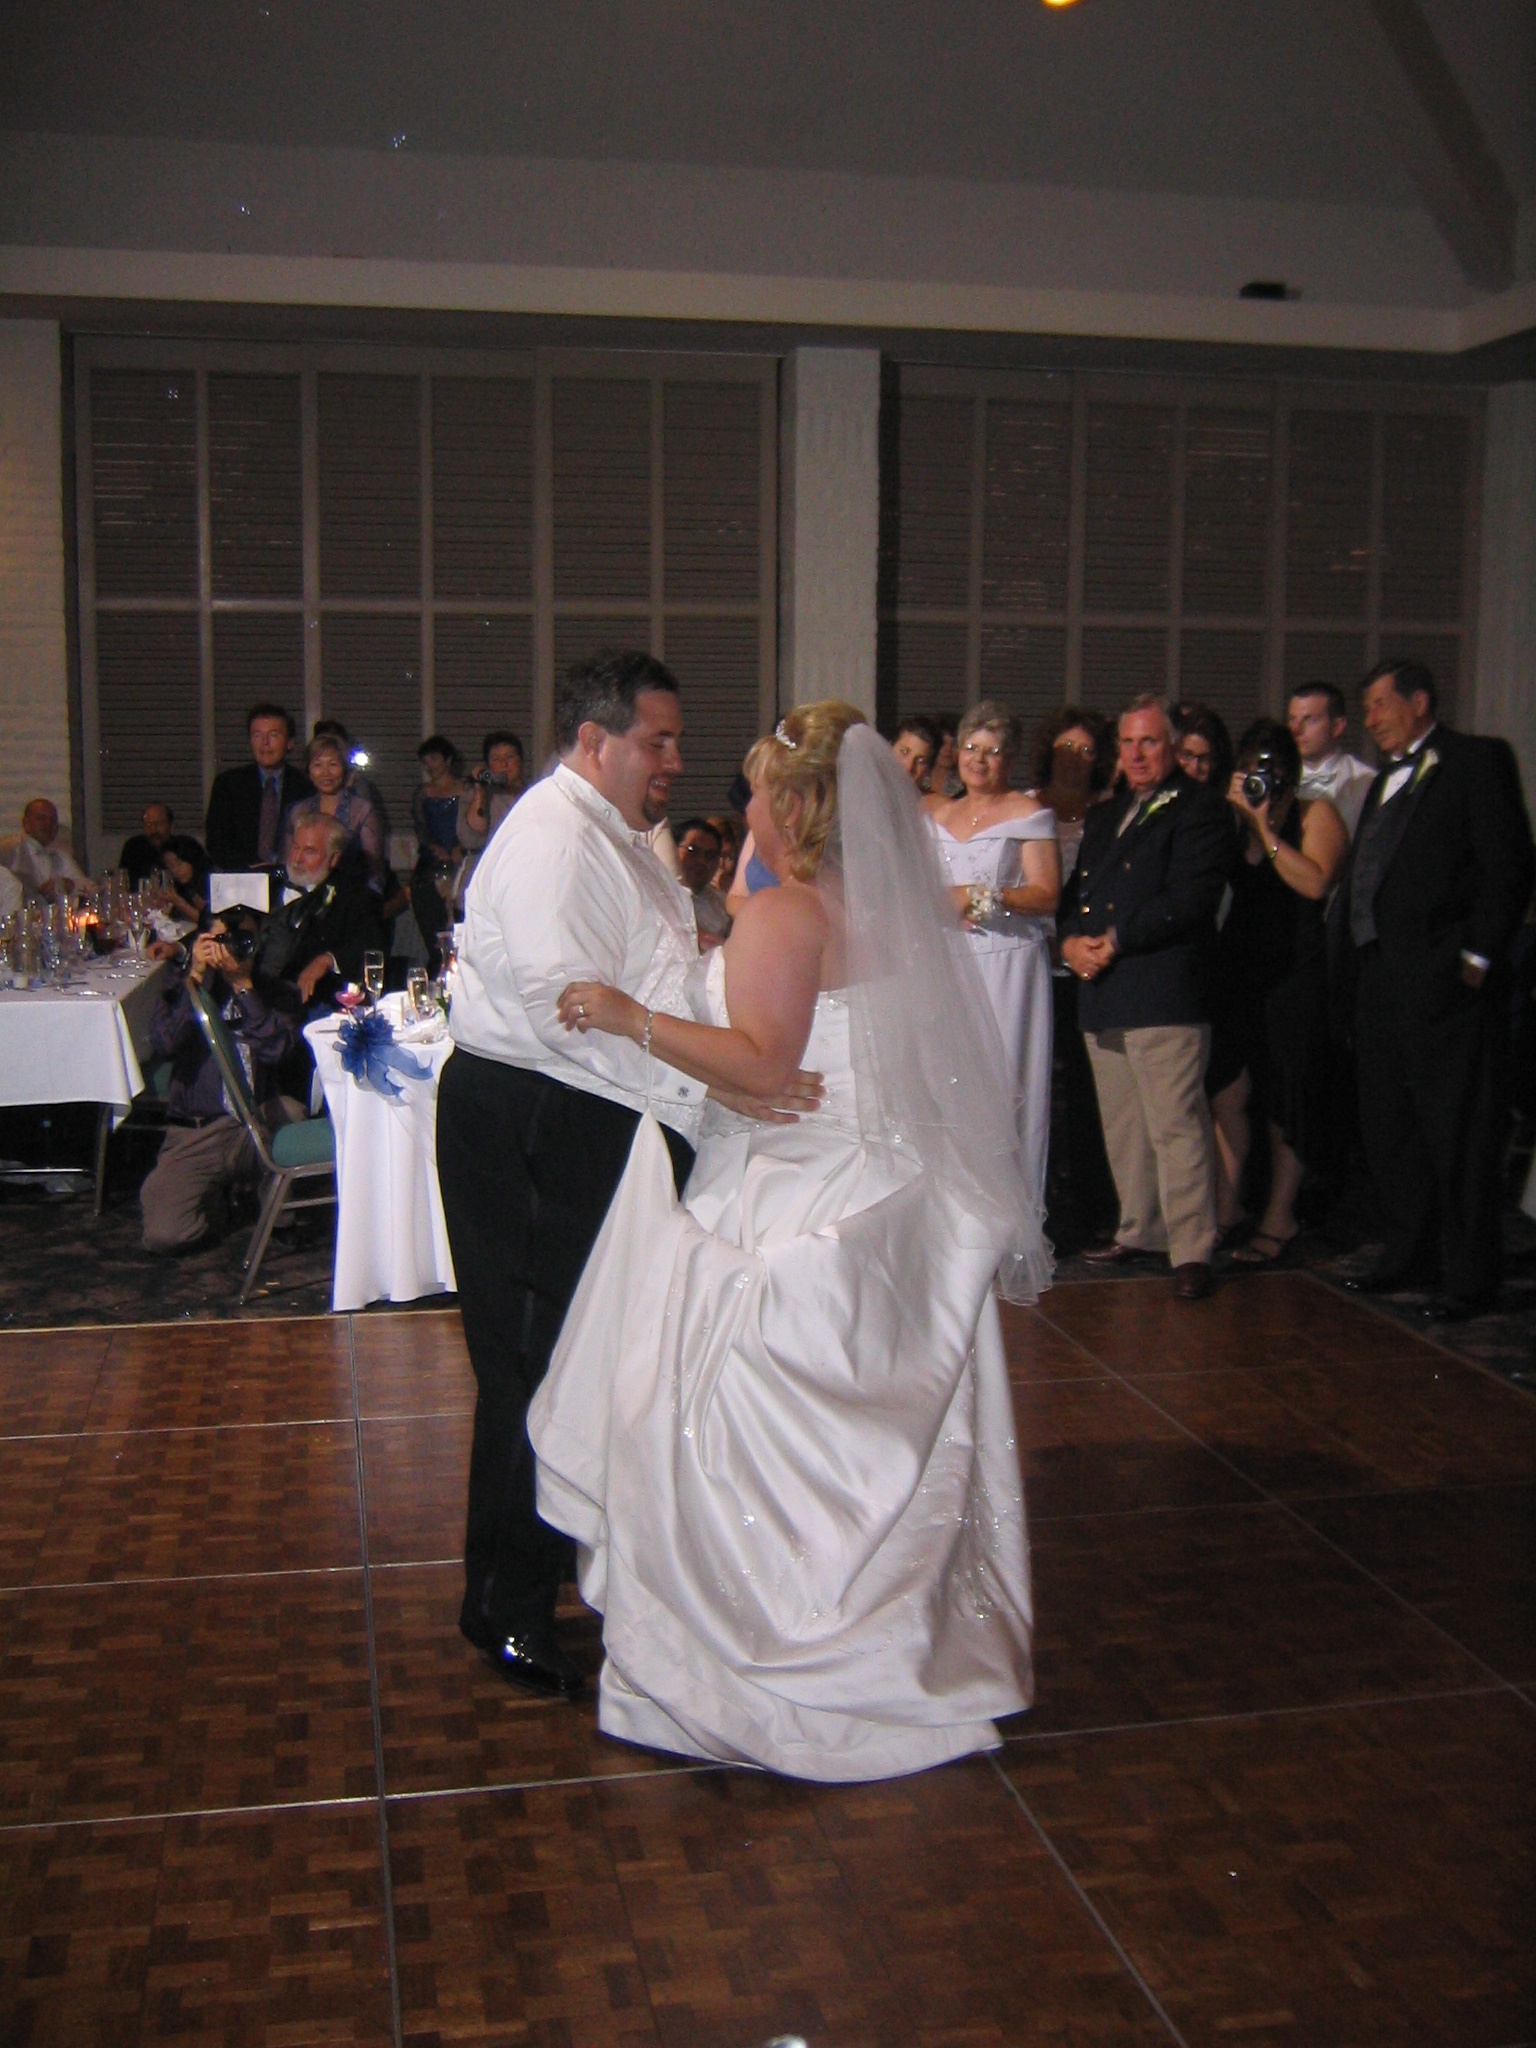 Reception, Flowers & Decor, Dancing, Bride and groom, Dj, Video, music and magic